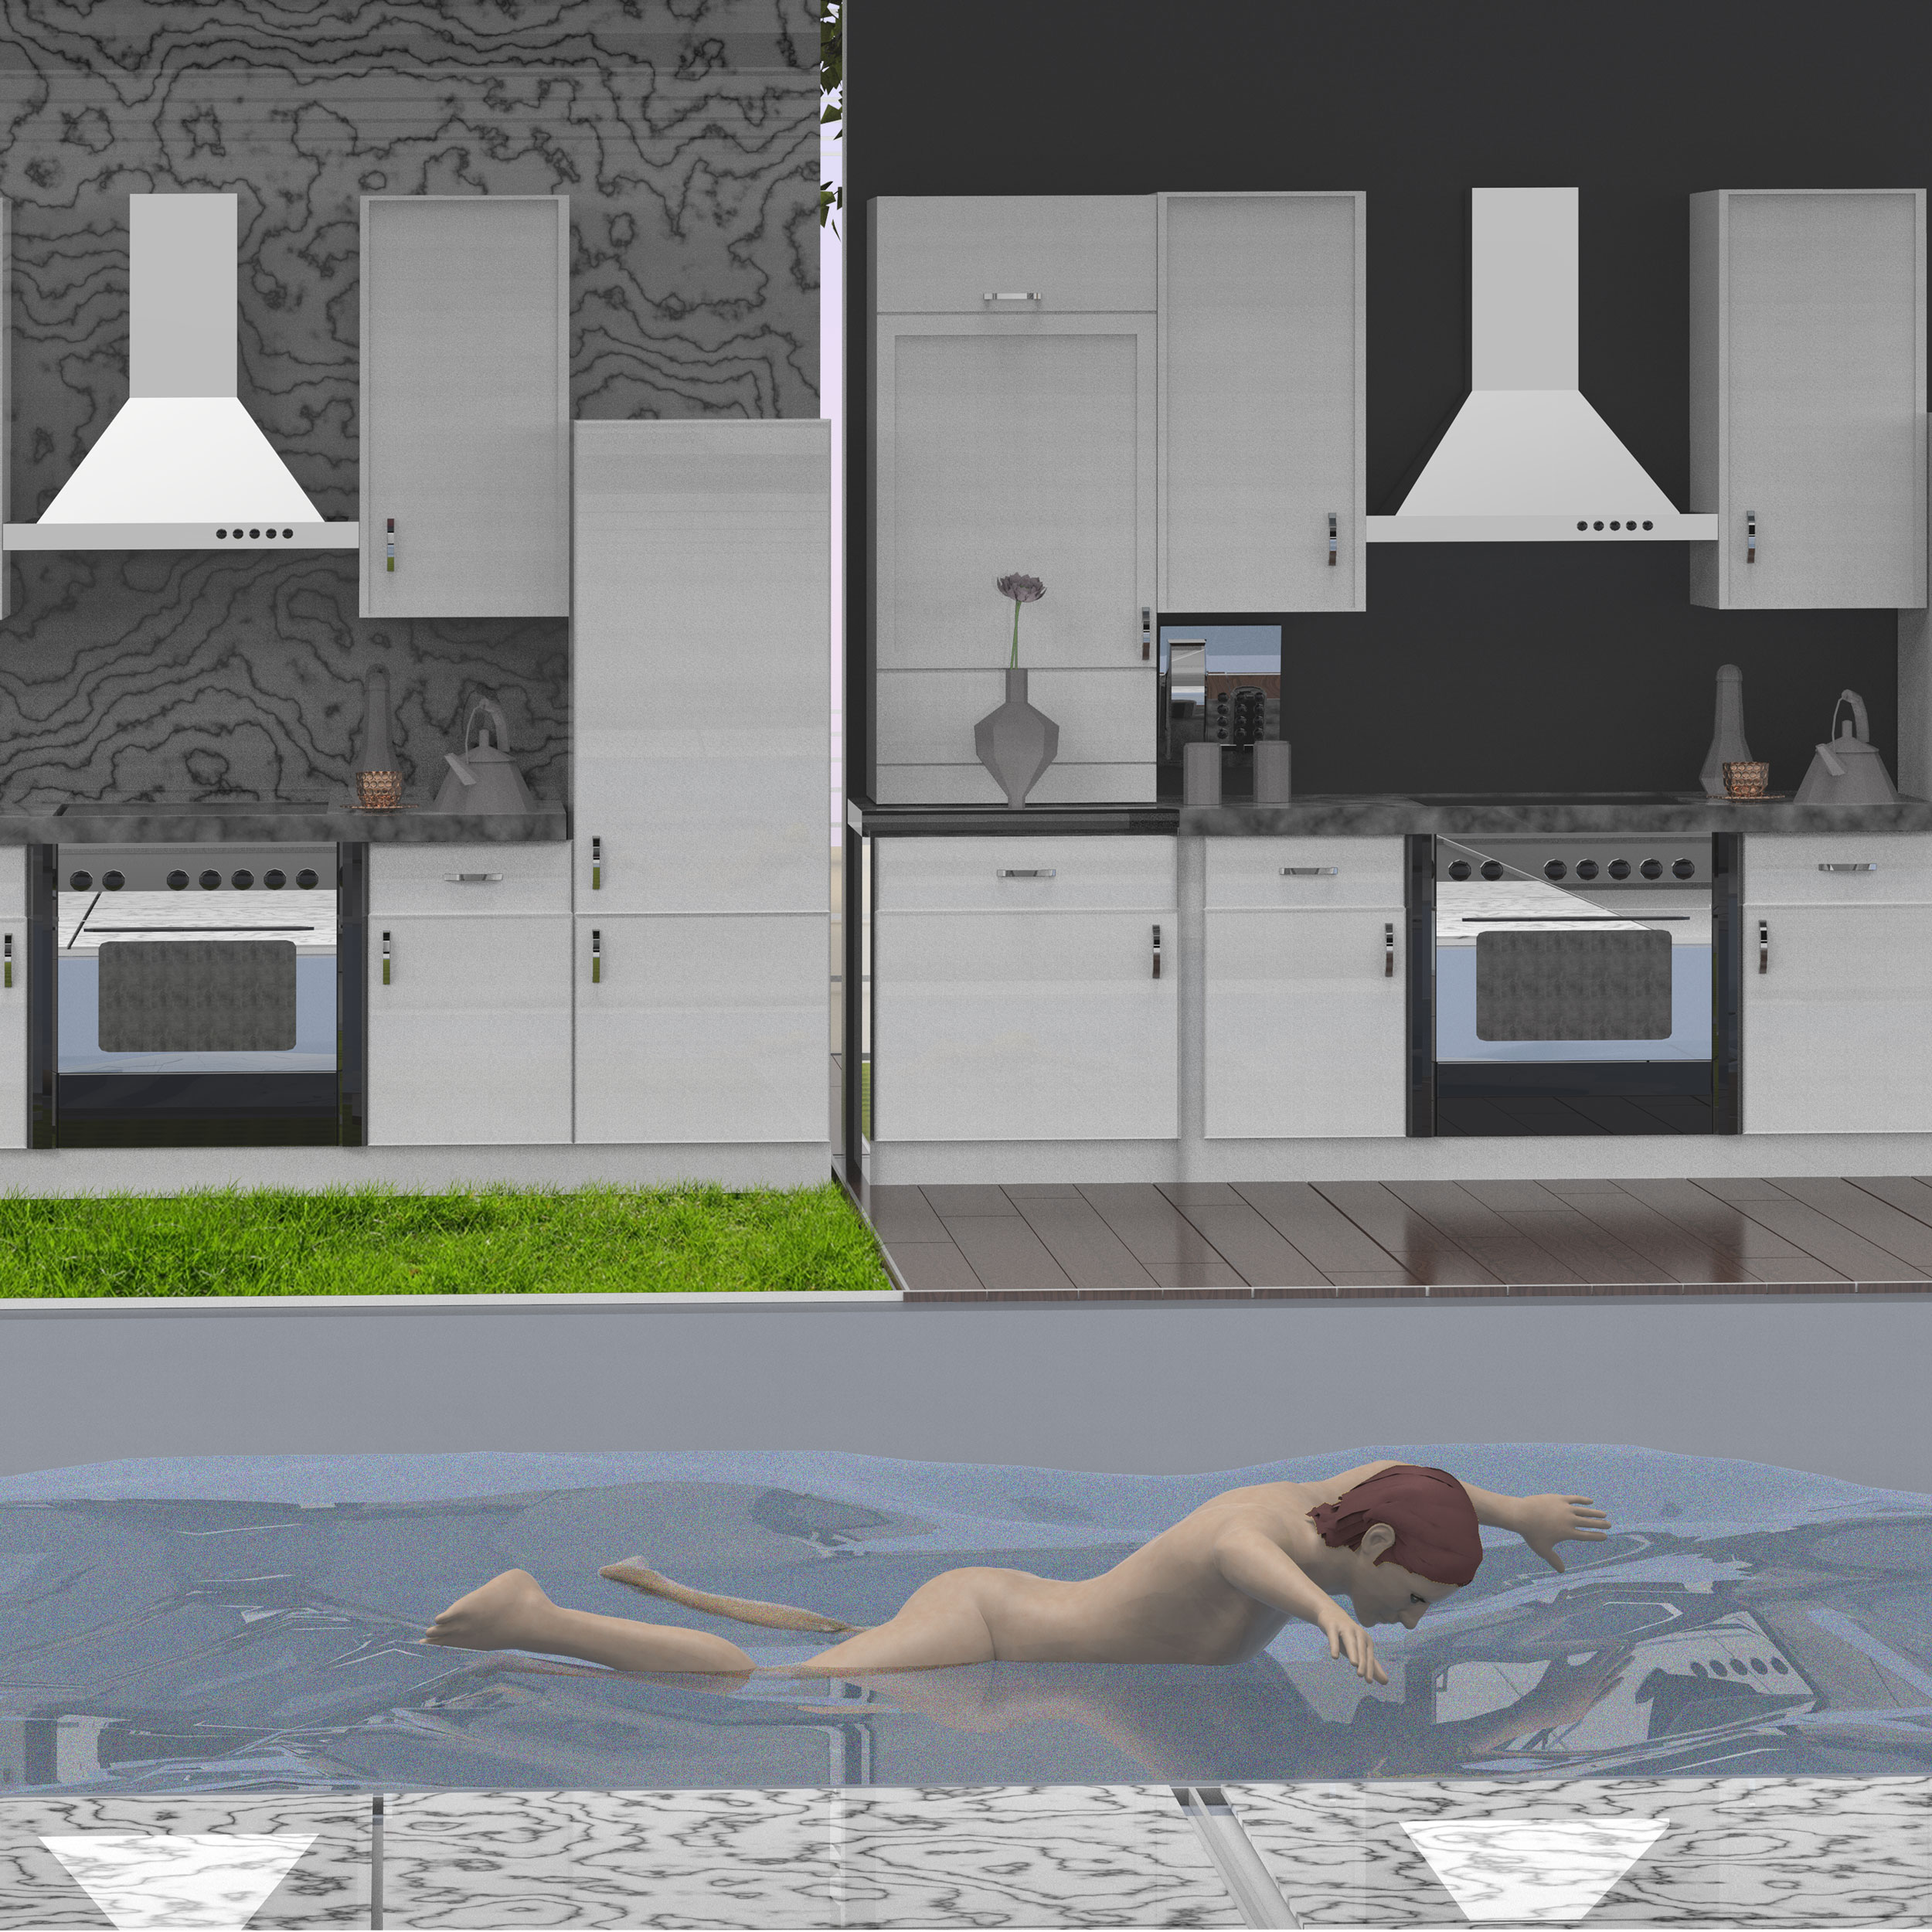 20170604_Pool_with_many_kitchen-2-SQ